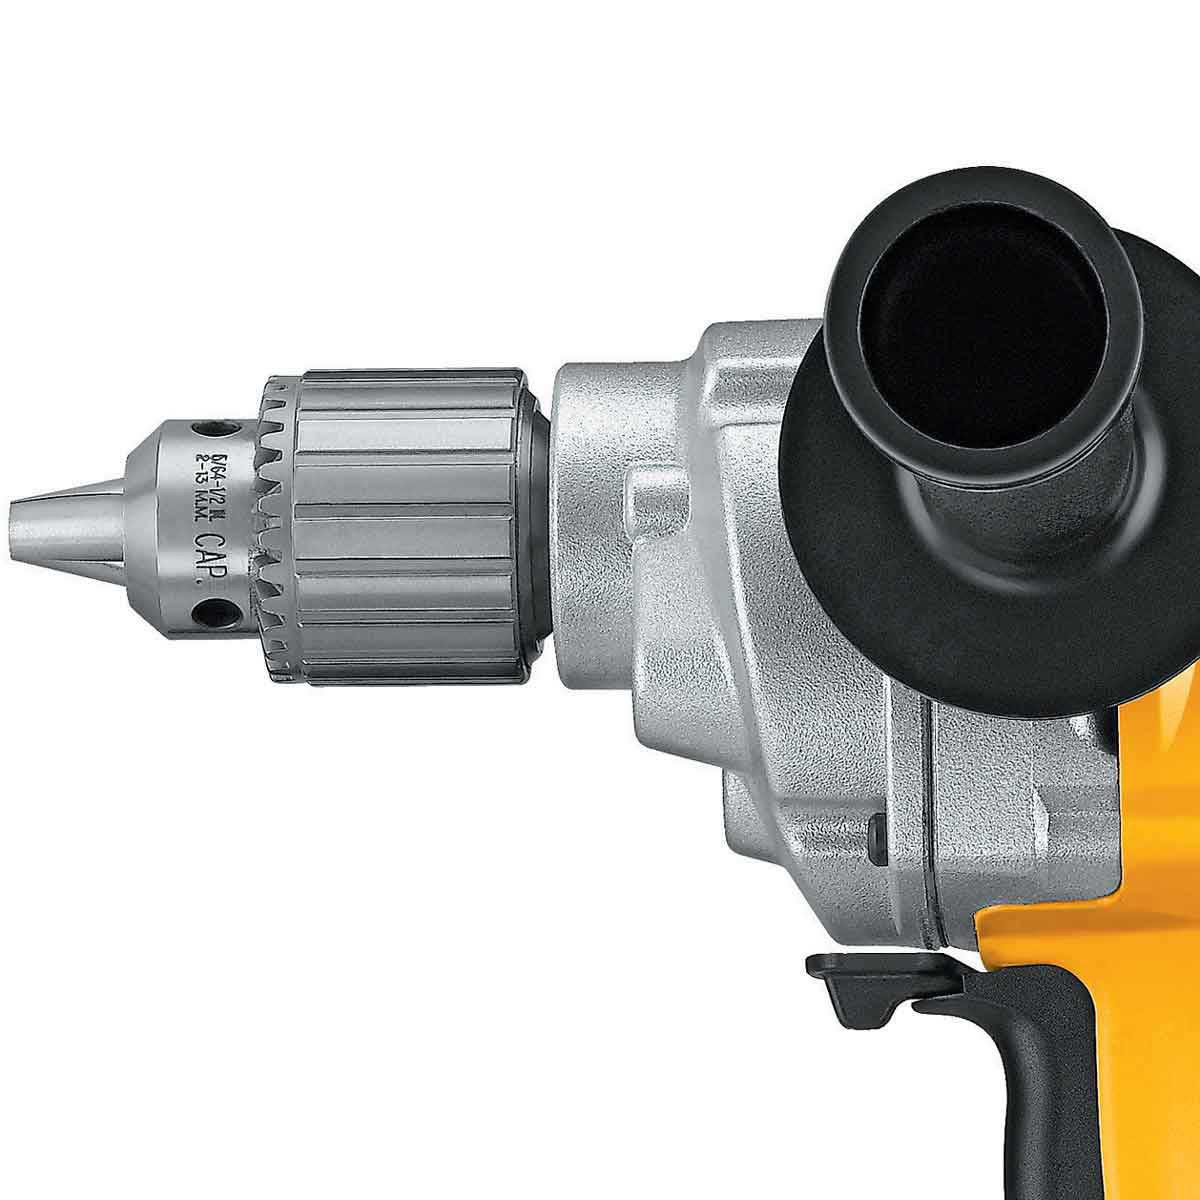 DW130V Dewalt 1/2 in. Mortar Mixing Drill heavy duty industrial chuck for mixing mortar without air into the mix for mud